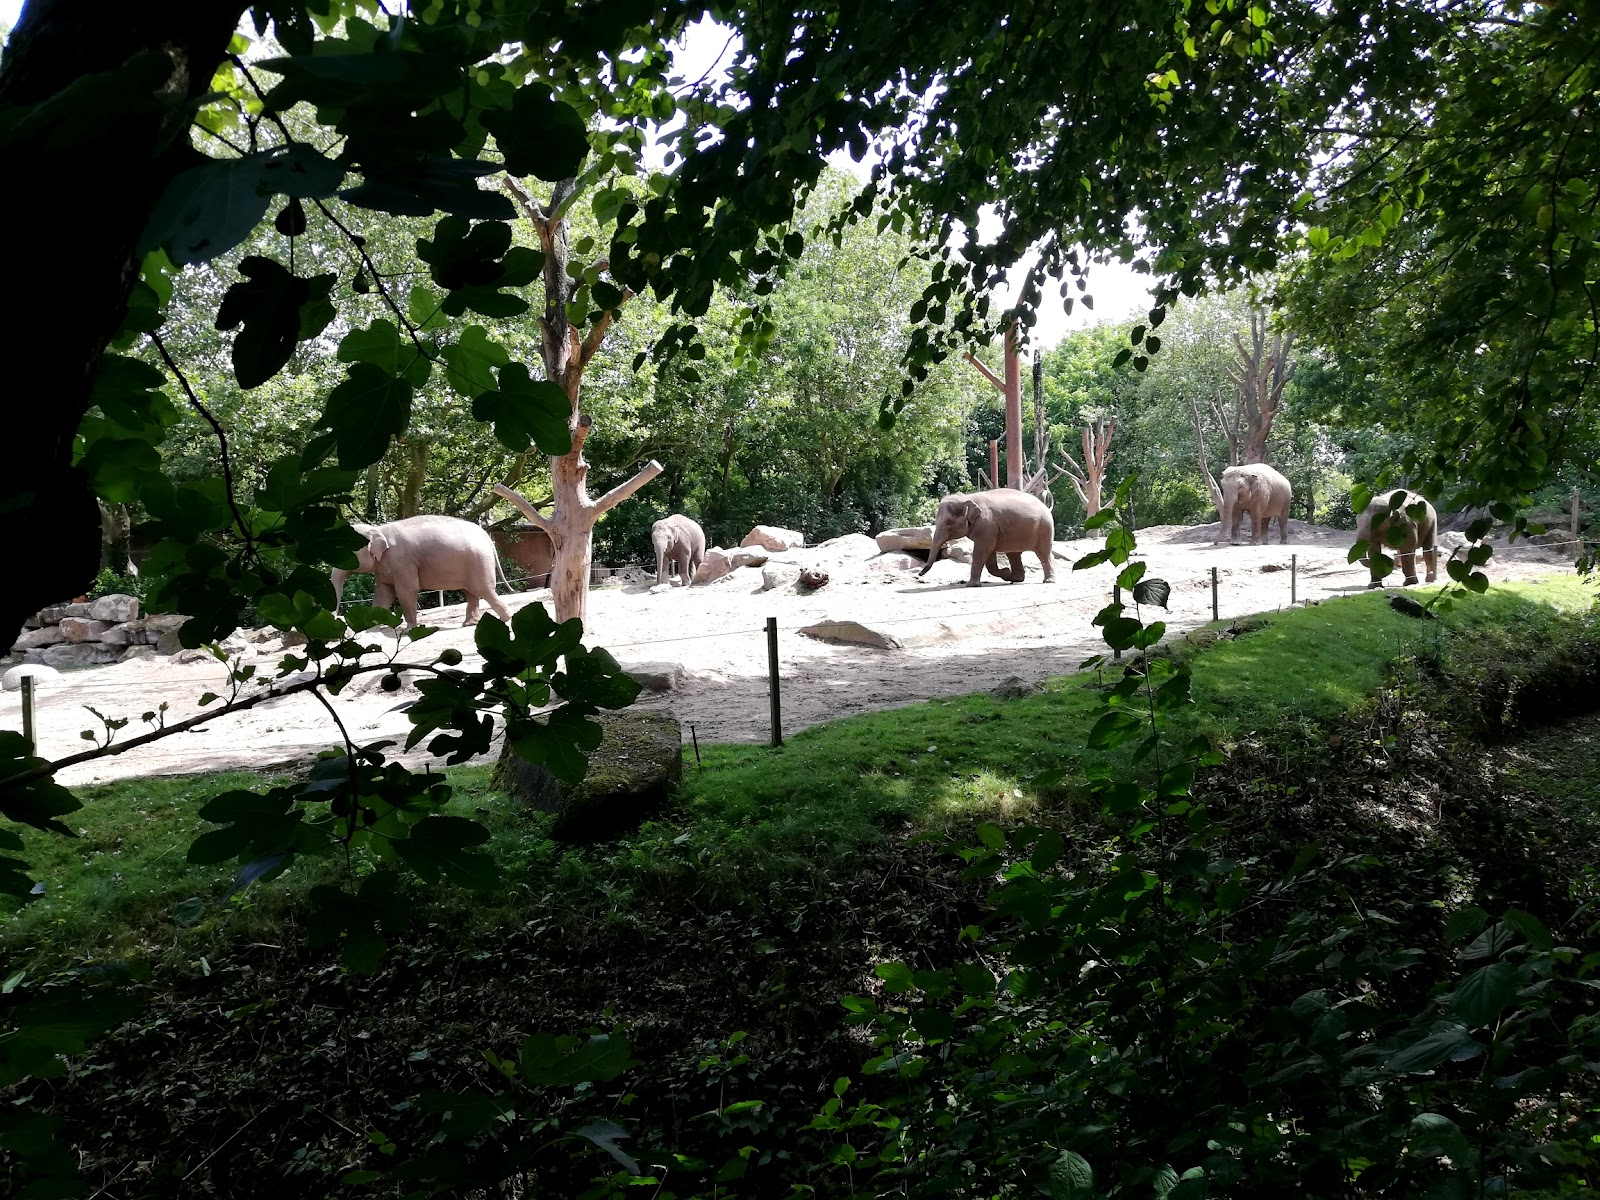 The giant Elephants are one of the many attractions of the Rotterdam zoo.